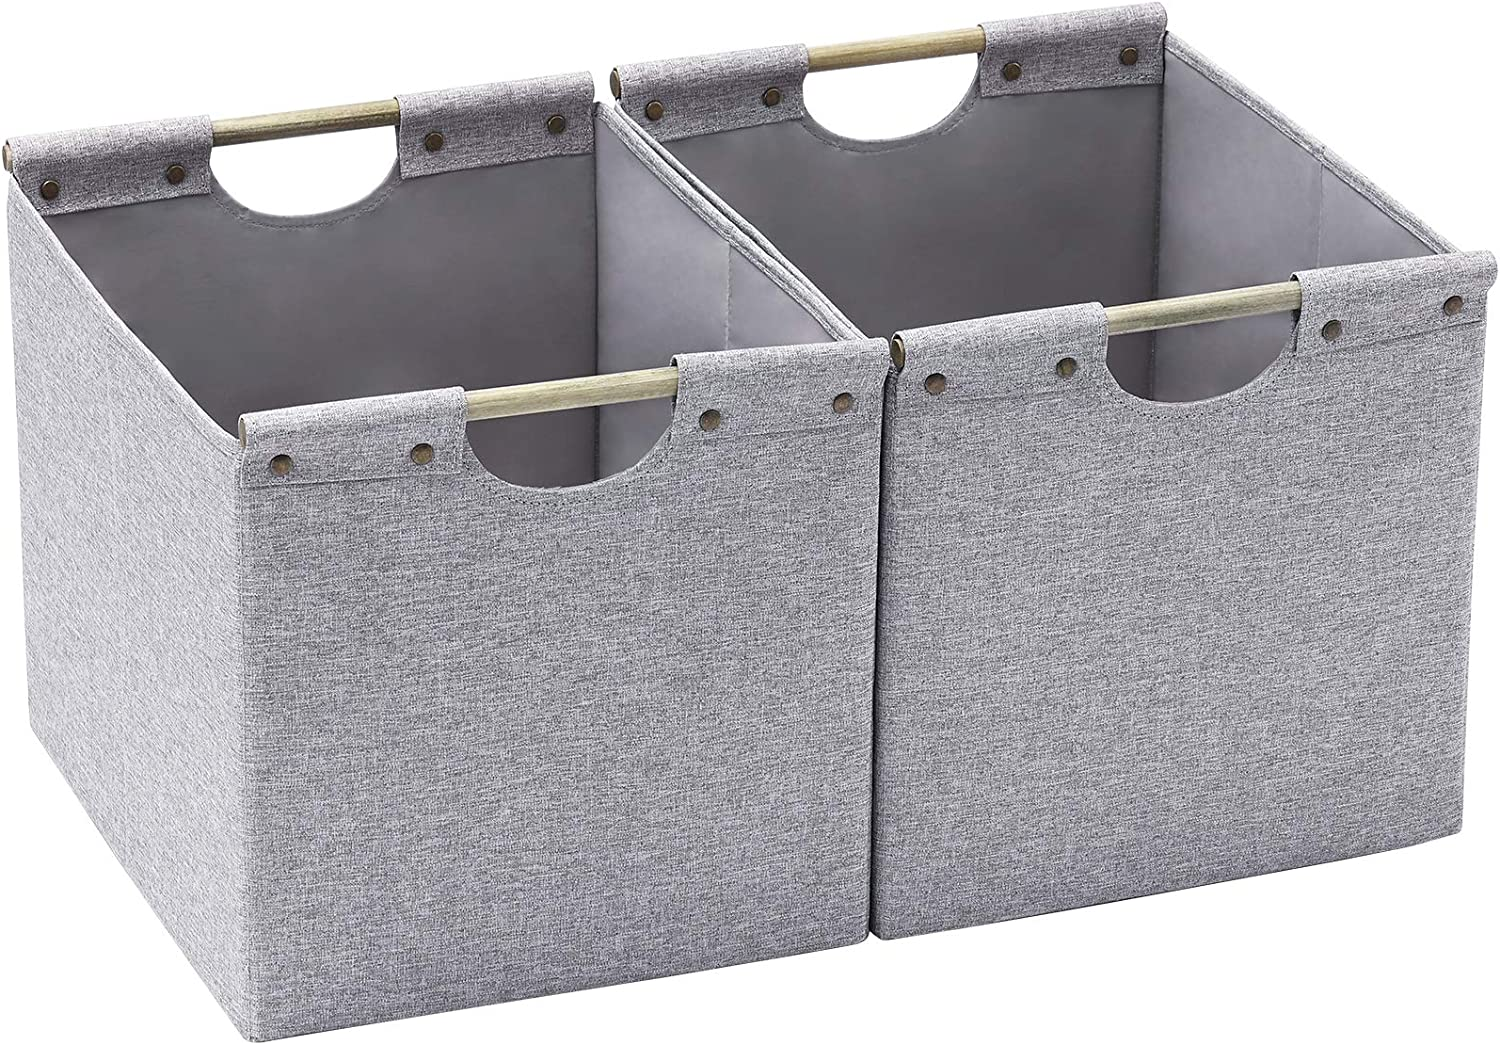 HOONEX Large Foldable Cube Storage Bins, Linen Fabric, 2 Pack, with Wooden Carry Handles and Sturdy Heavy Cardboard, for Home, Office, Car, Nursery, Grey